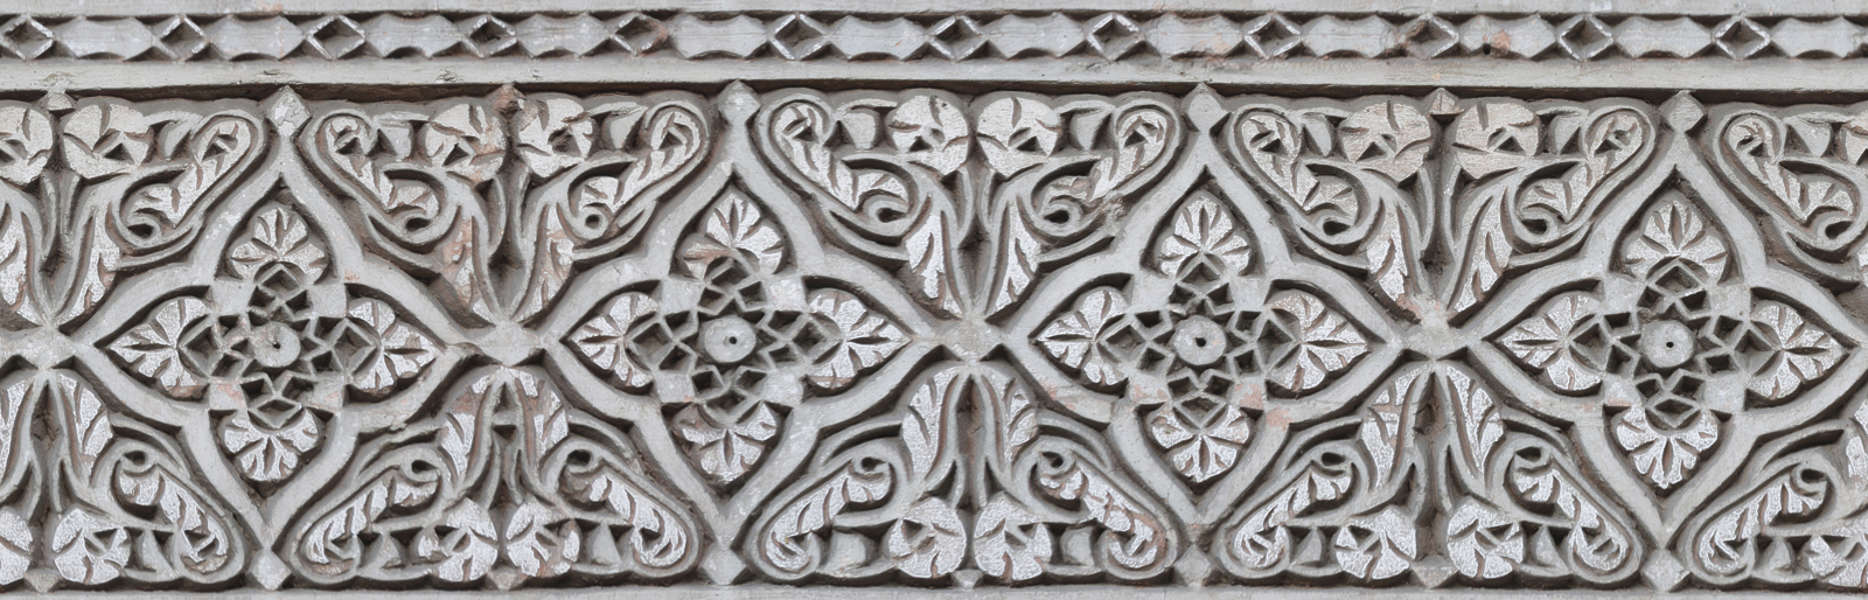 Ornamentsmoorishstucco0185 Free Background Texture